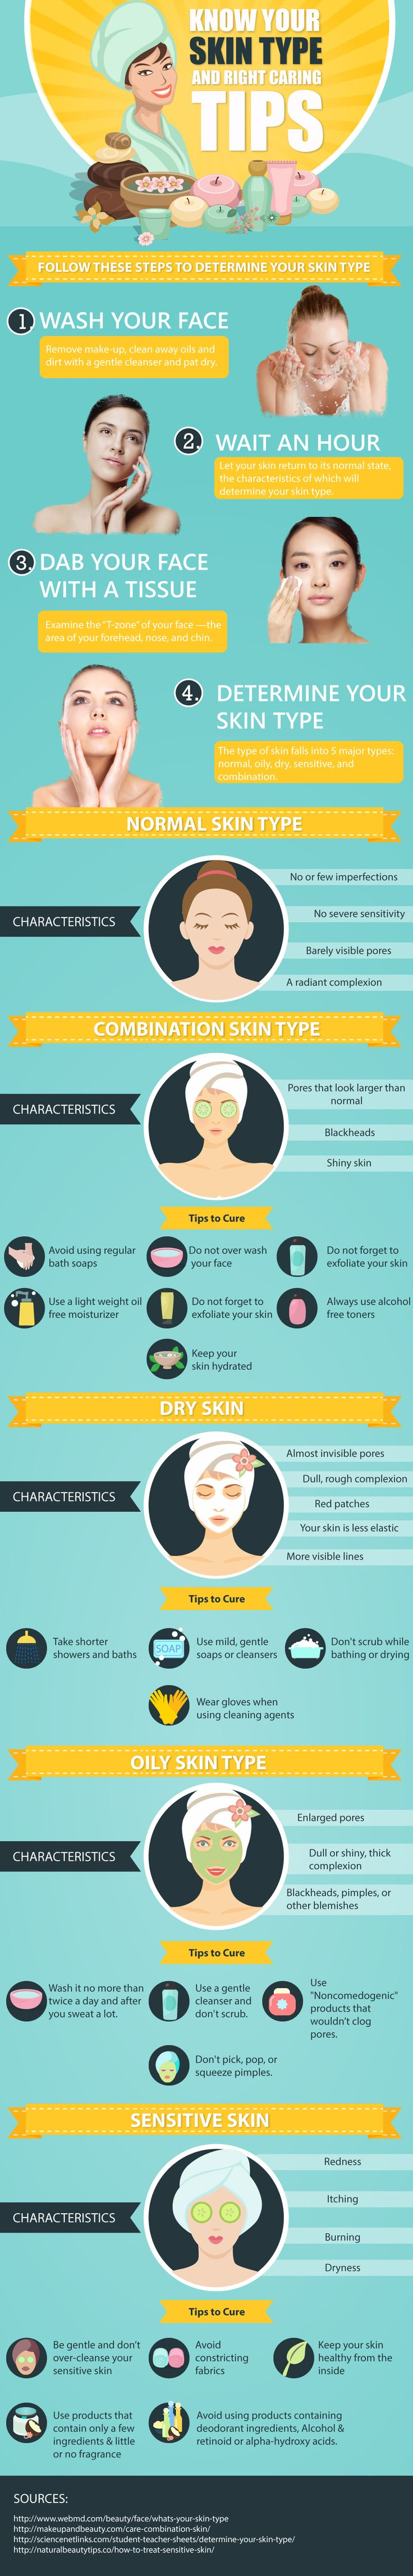 The experts at Kaya Skin Care clinics have compiled a handy list of skin care tips that every woman should follow for healthy and glowing skin. For more details please visit at http://www.kayaskinclinic.com/